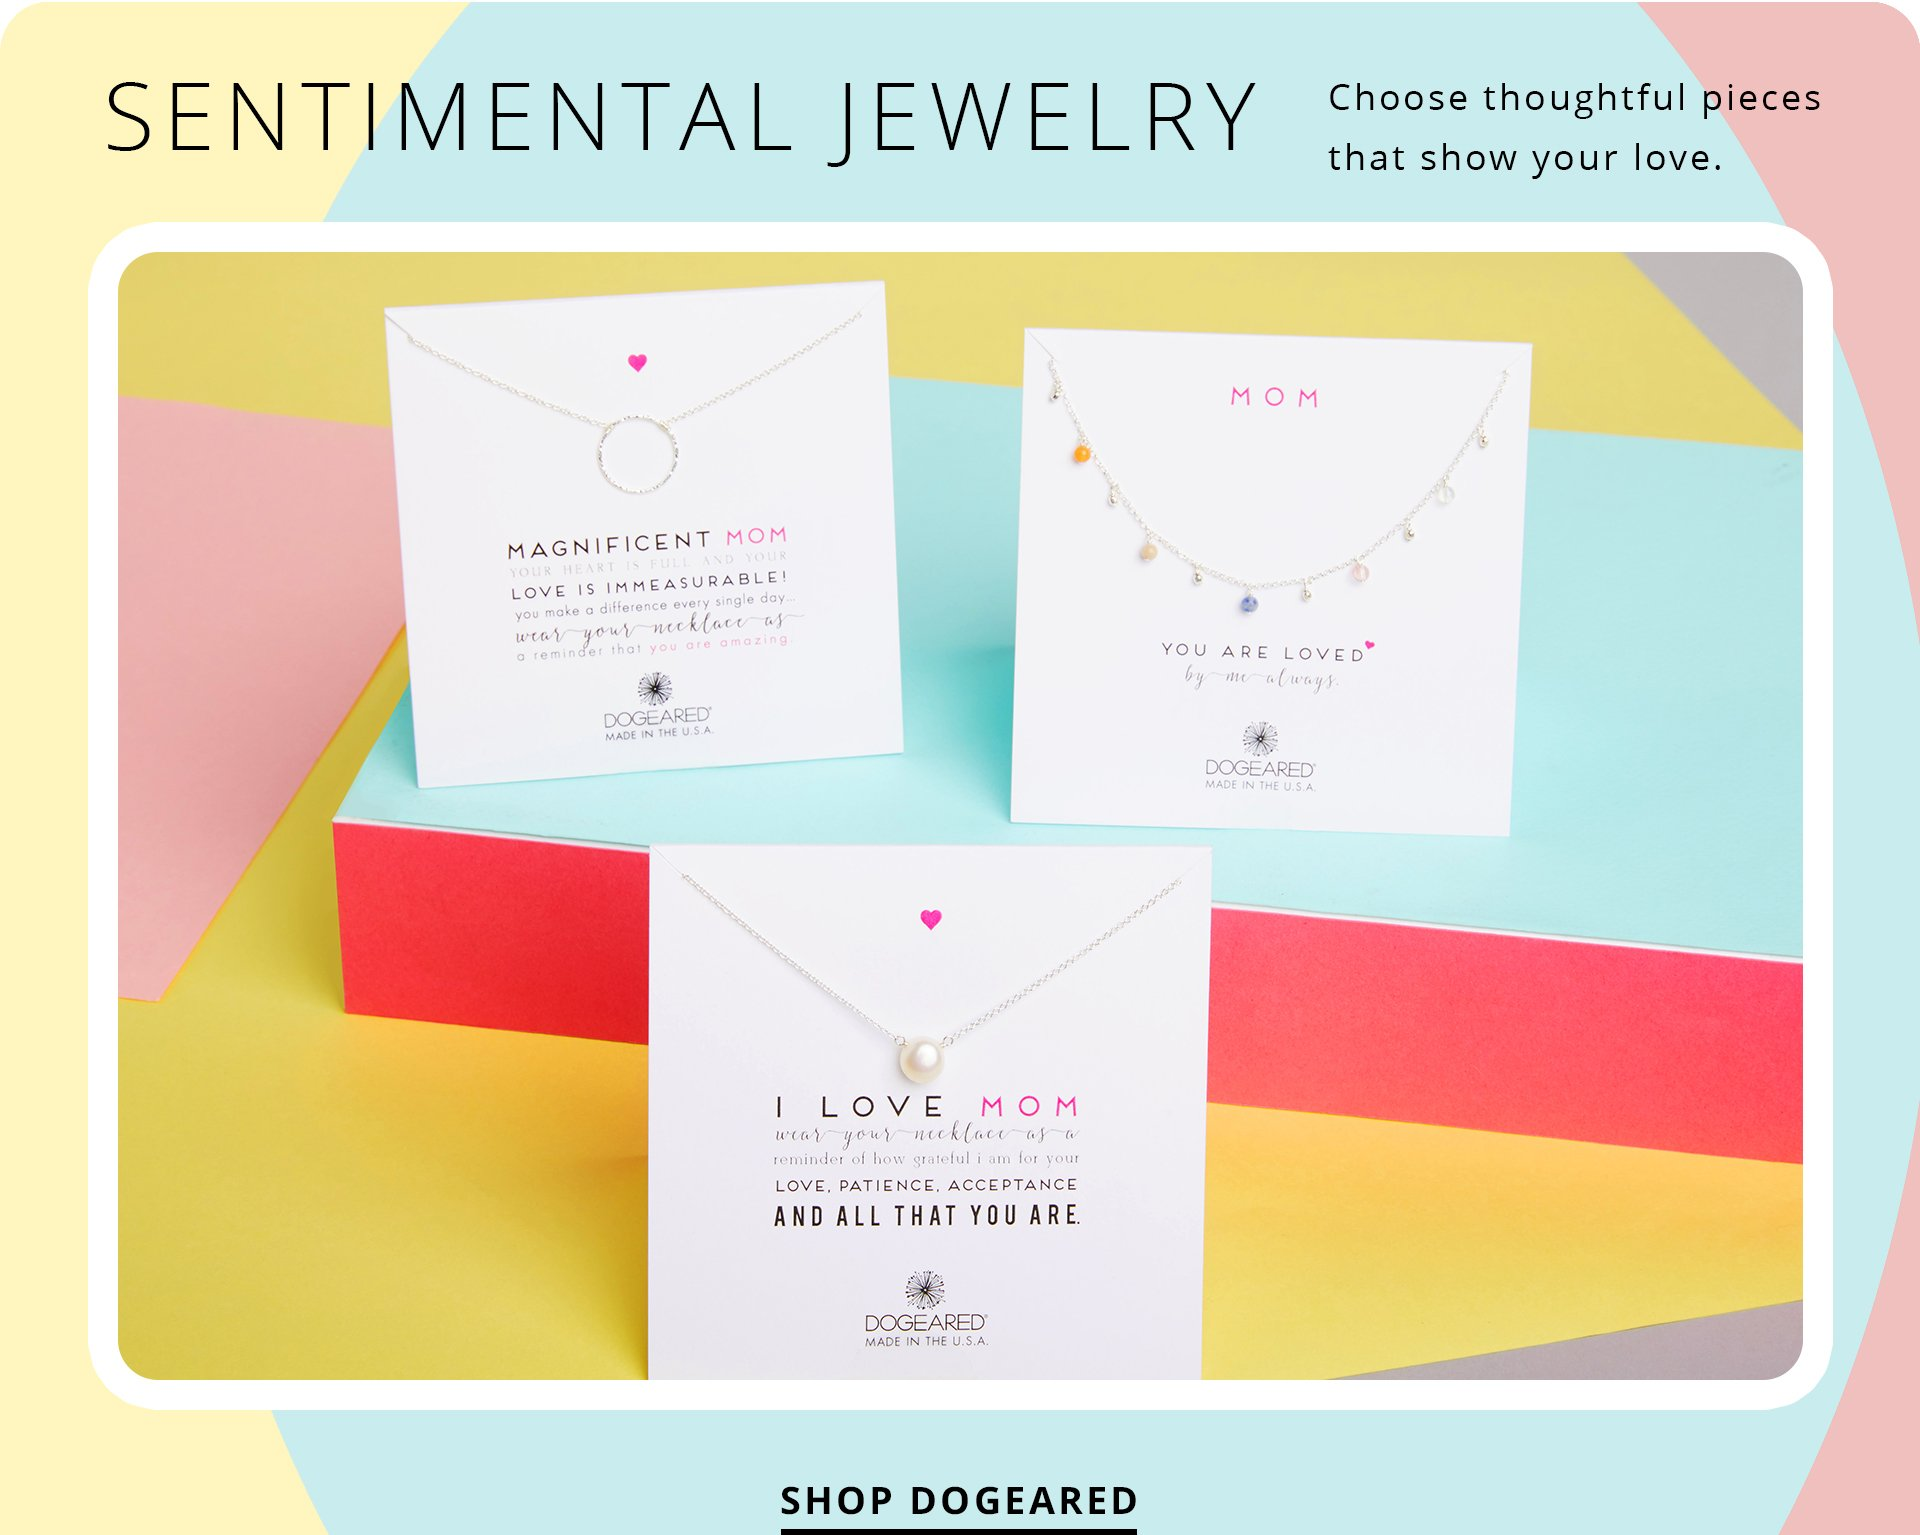 Sentimental Jewelry. Choose thoughtful pieces that show your love. Shop Dogeared.